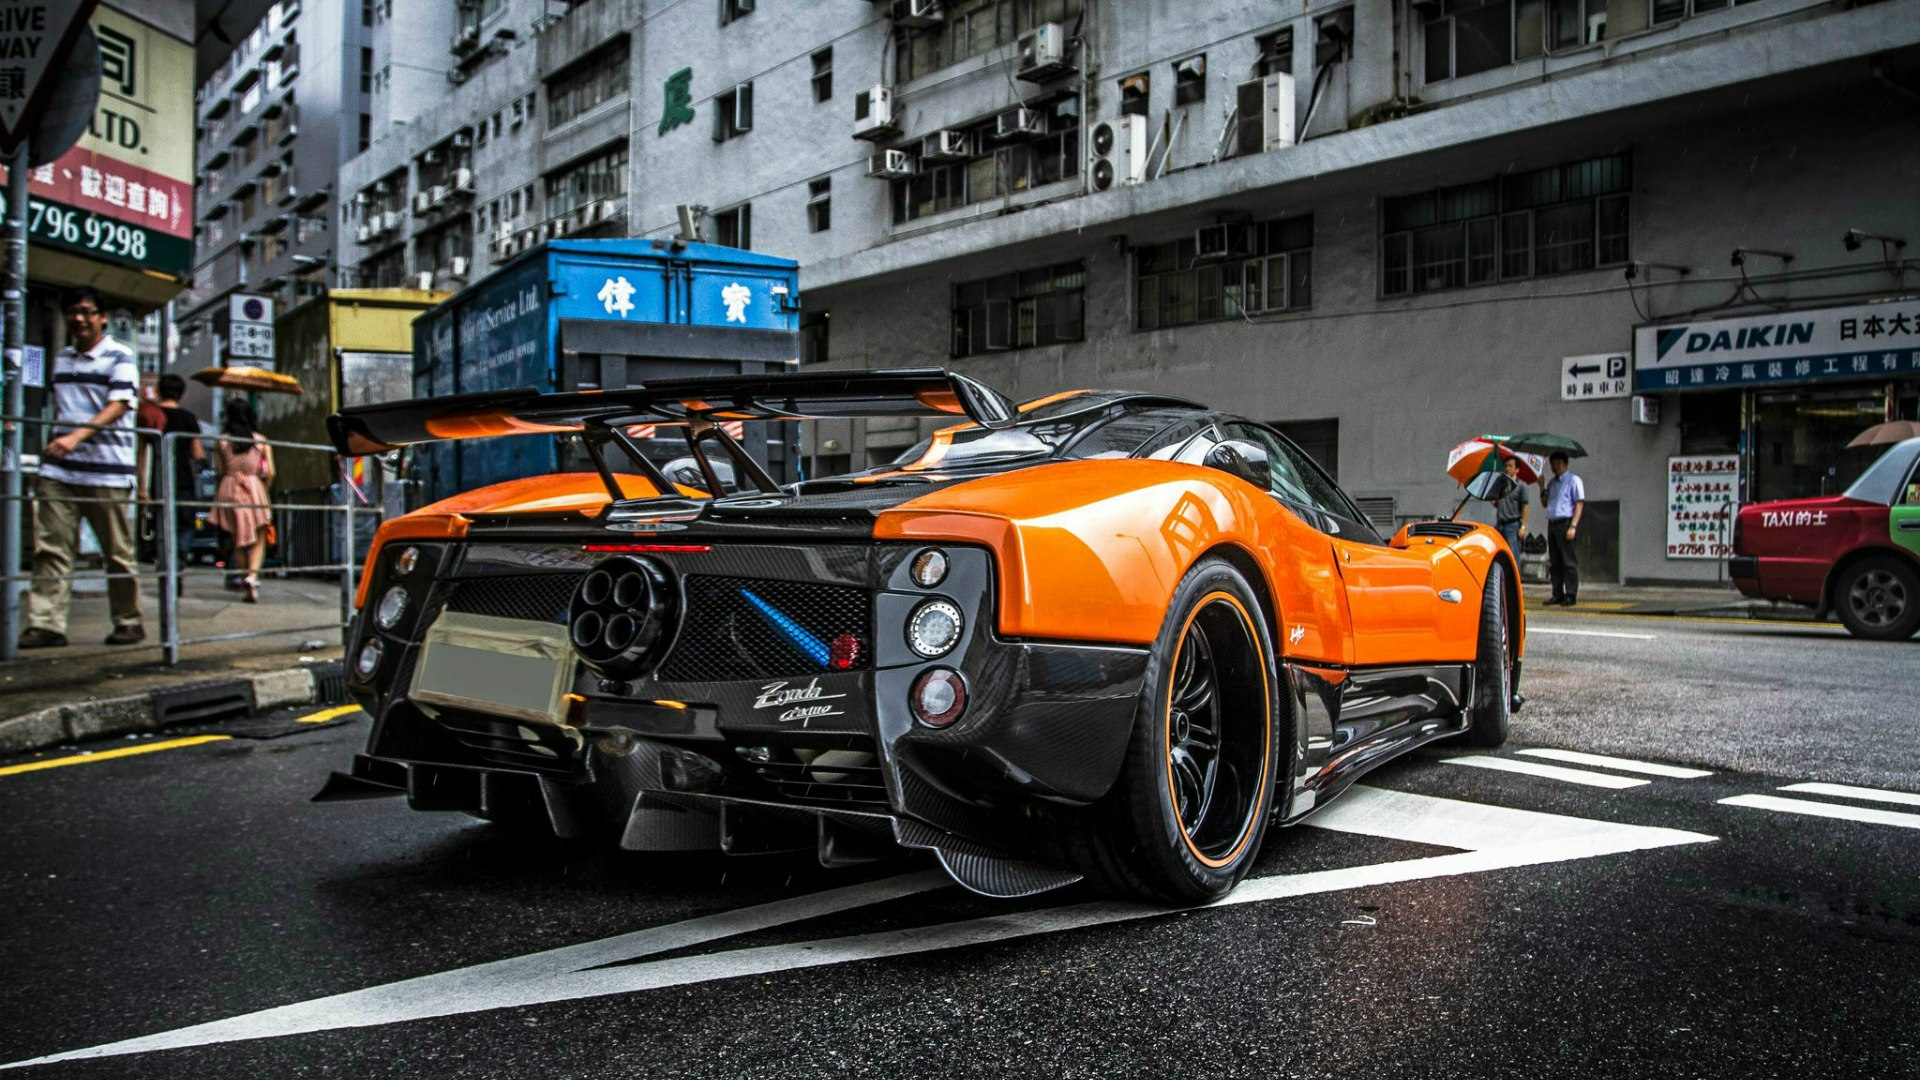 download pagani zonda hd 4k wallpapers in 1920x1080 screen